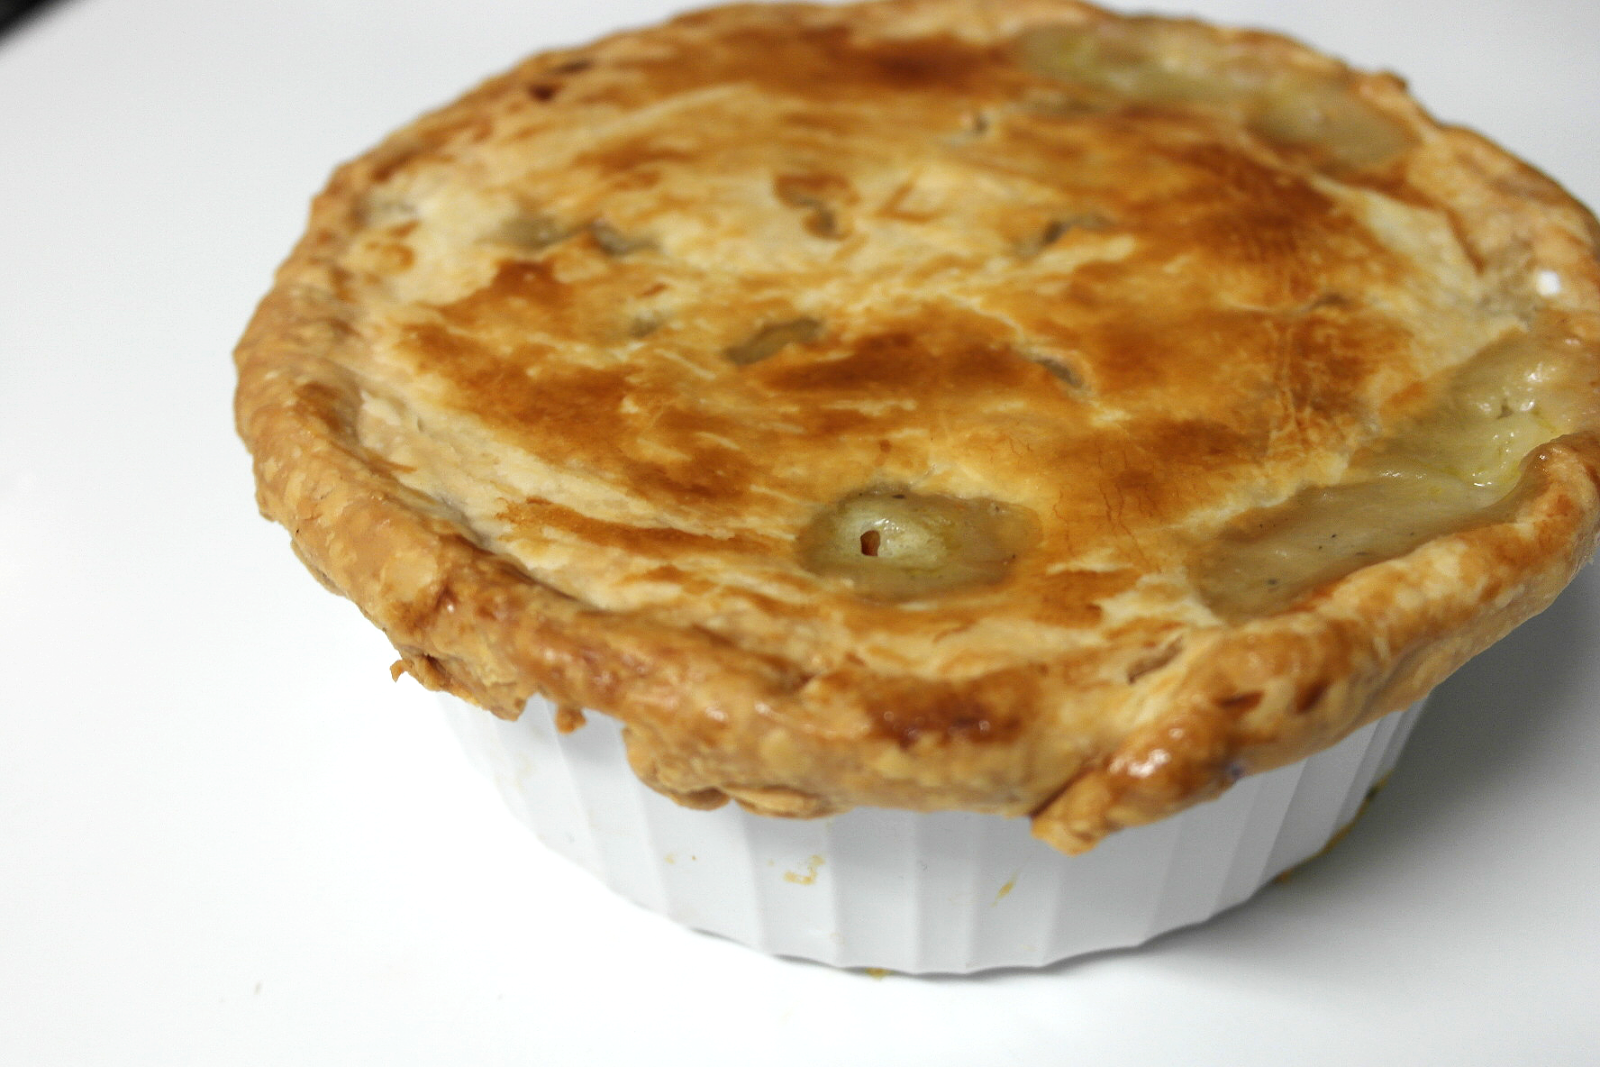 Ann with a plan: Vegetable Pot Pie for 2